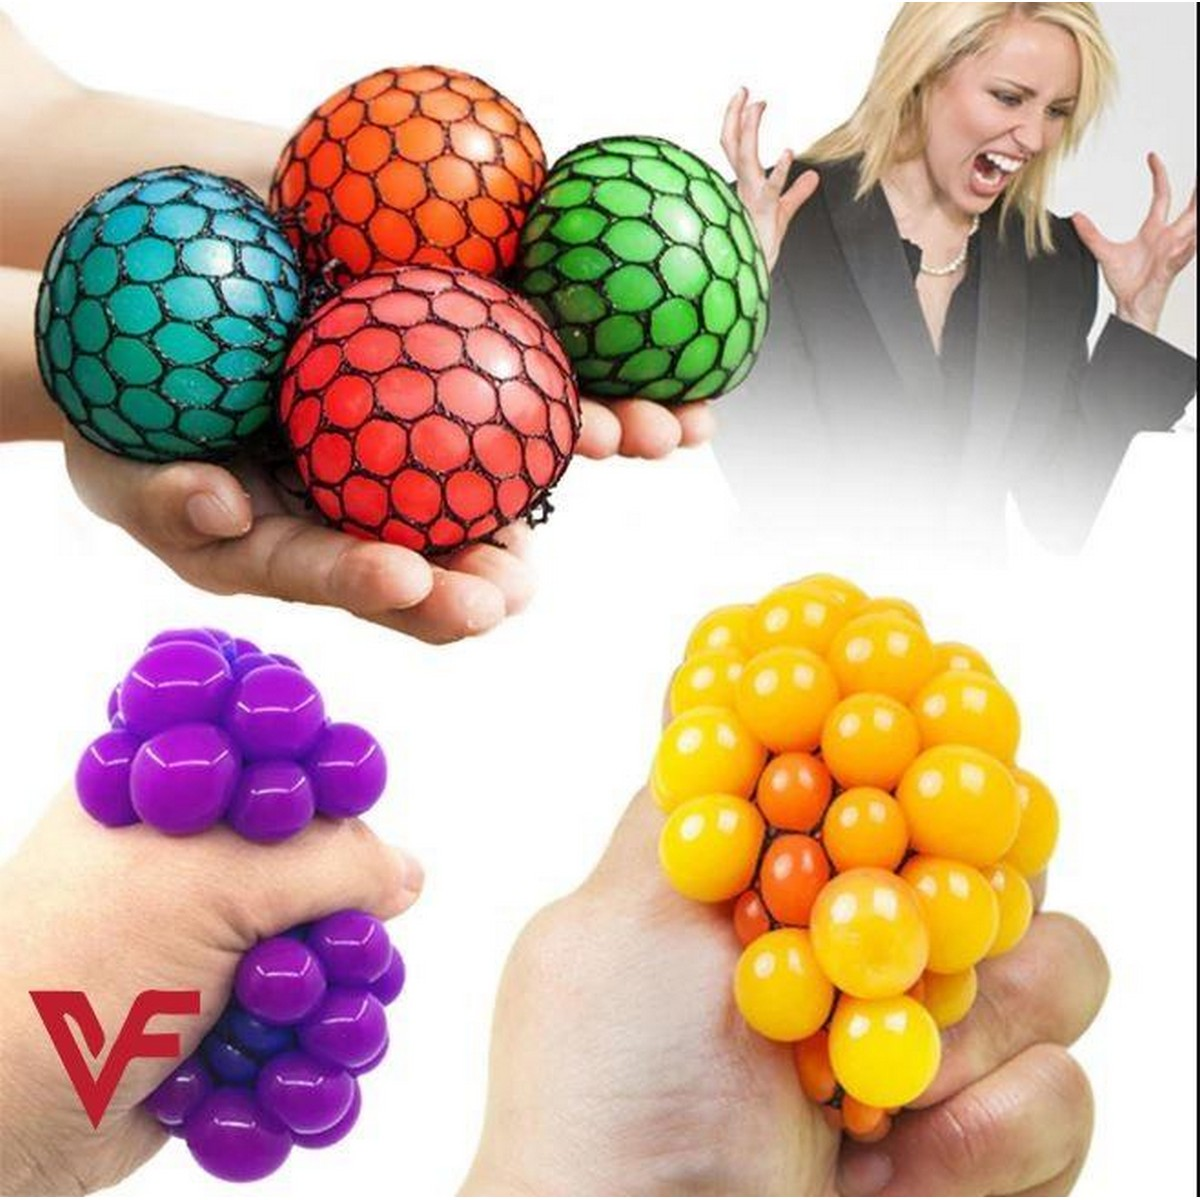 Pack of 2 Magic Colour Changeable Grape Mesh Squish Ball Stress Release Toy Squeezing Rubber Vent Grape Ball, Hand Wrist Toy